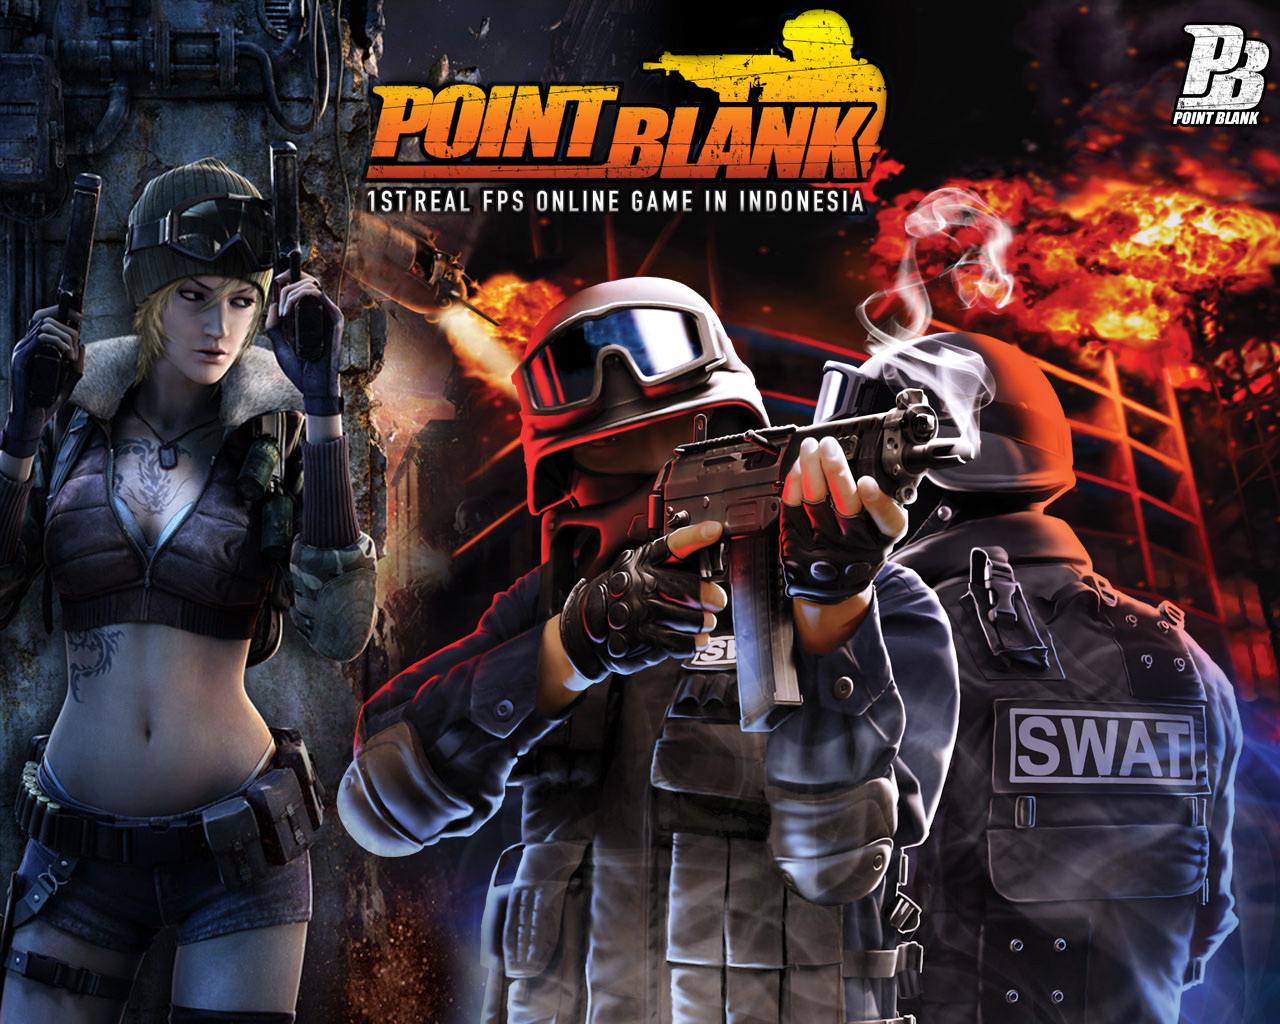 Download Image Point Blank Pc Game Online Pc Android Iphone And Ipad